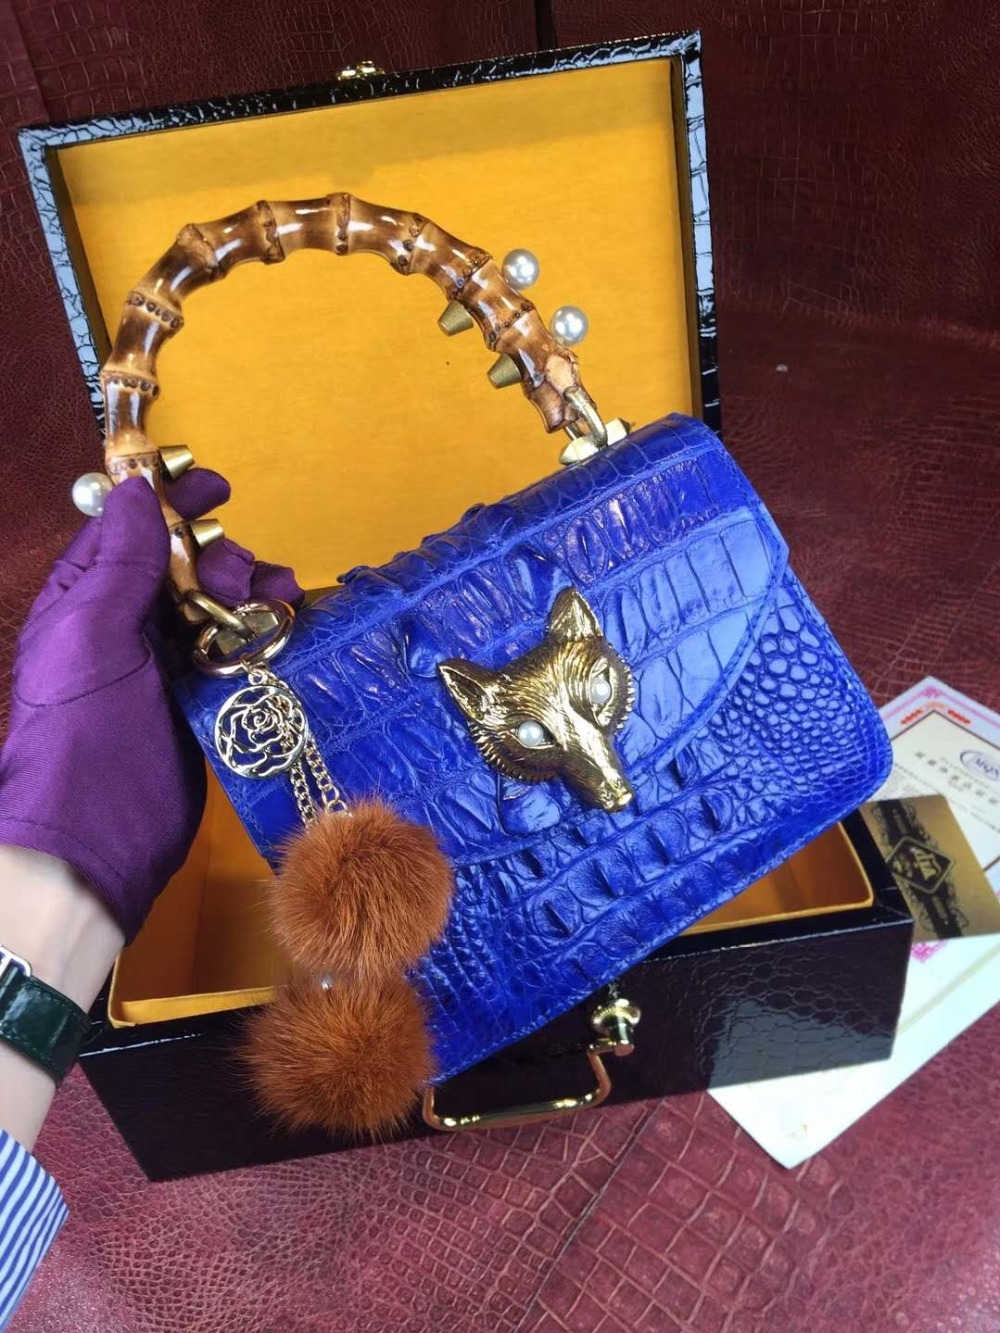 100% Crocodile Skin Small Size long metal chain lady Shoulder /Cross Body Bag alligator skin leather women bag purple blue color100% Crocodile Skin Small Size long metal chain lady Shoulder /Cross Body Bag alligator skin leather women bag purple blue color